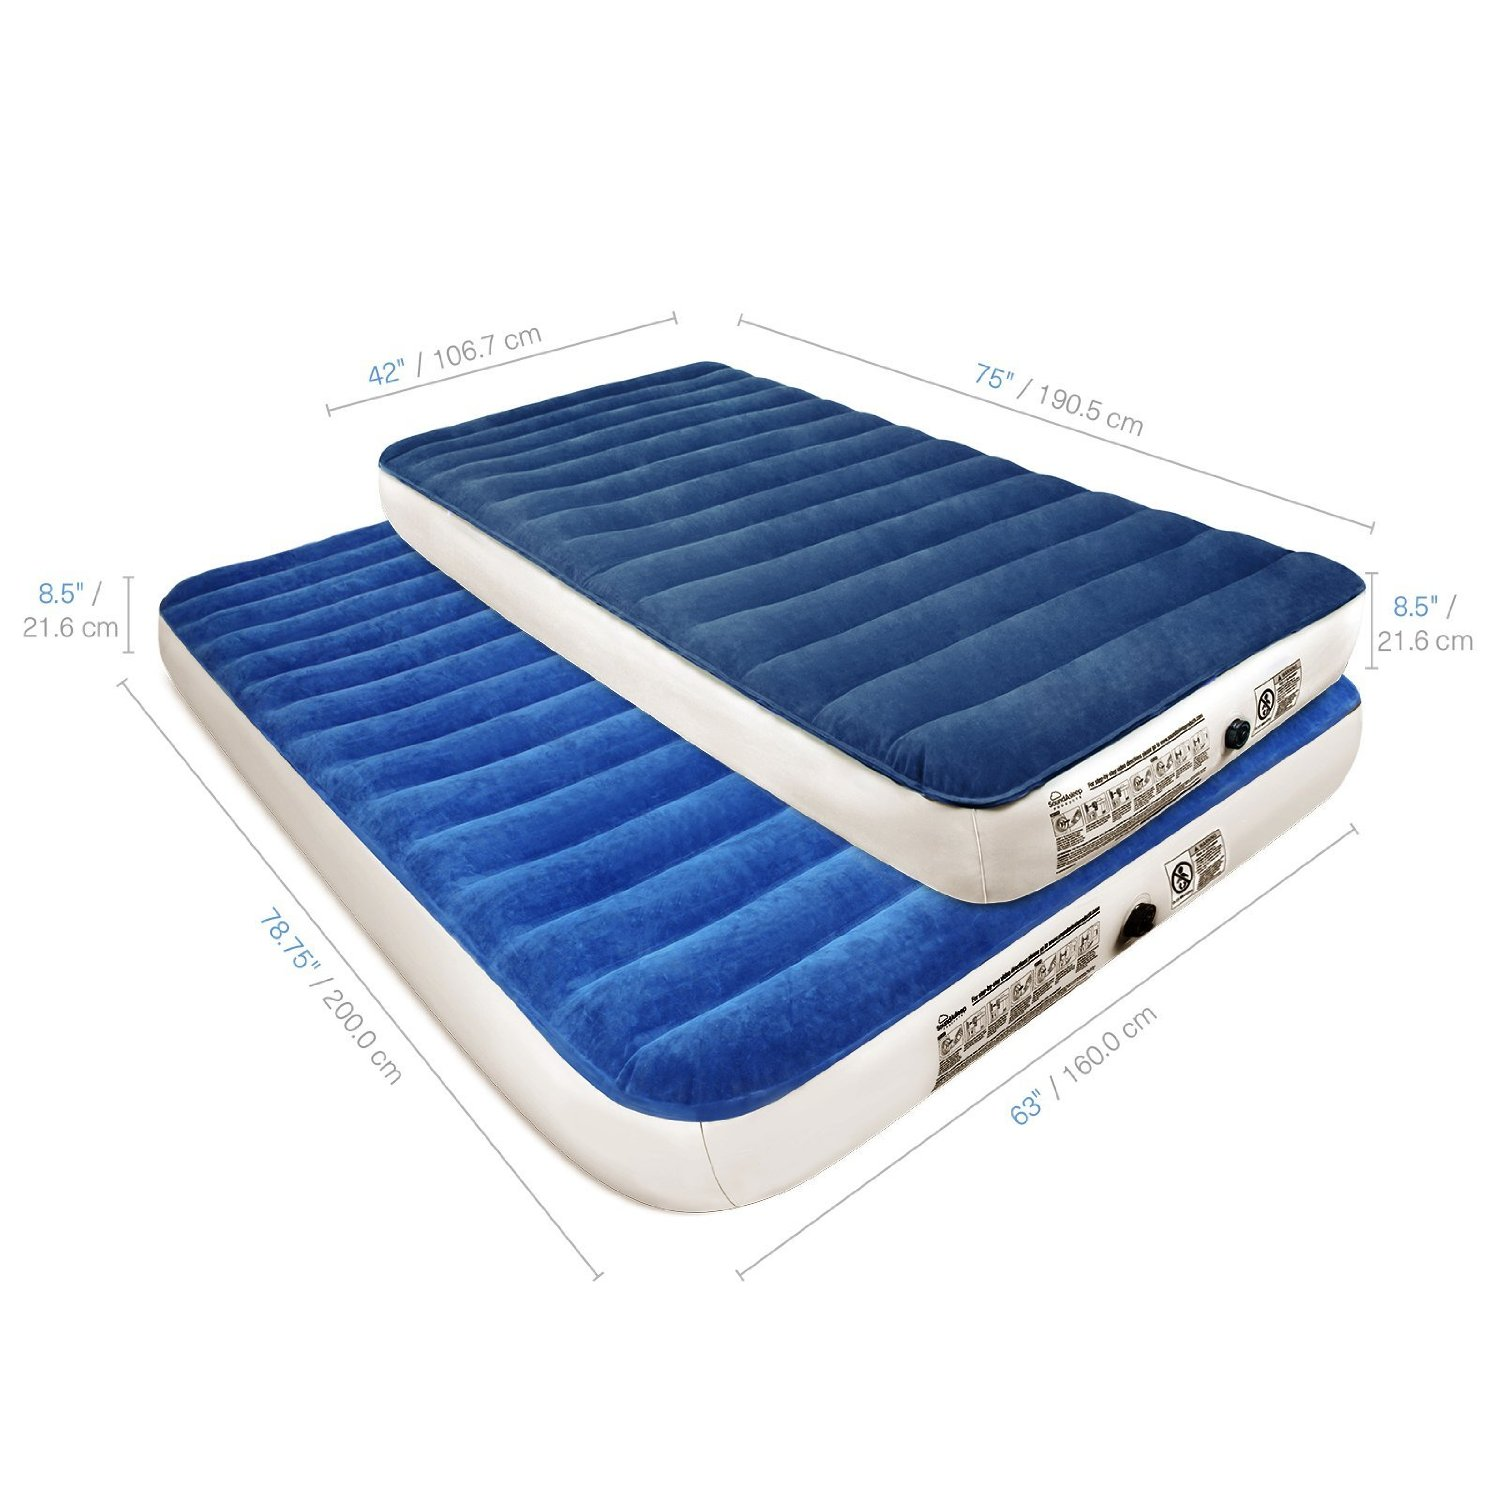 SoundAsleep Camping Series Air Mattress with Included Rechargable Air Pump